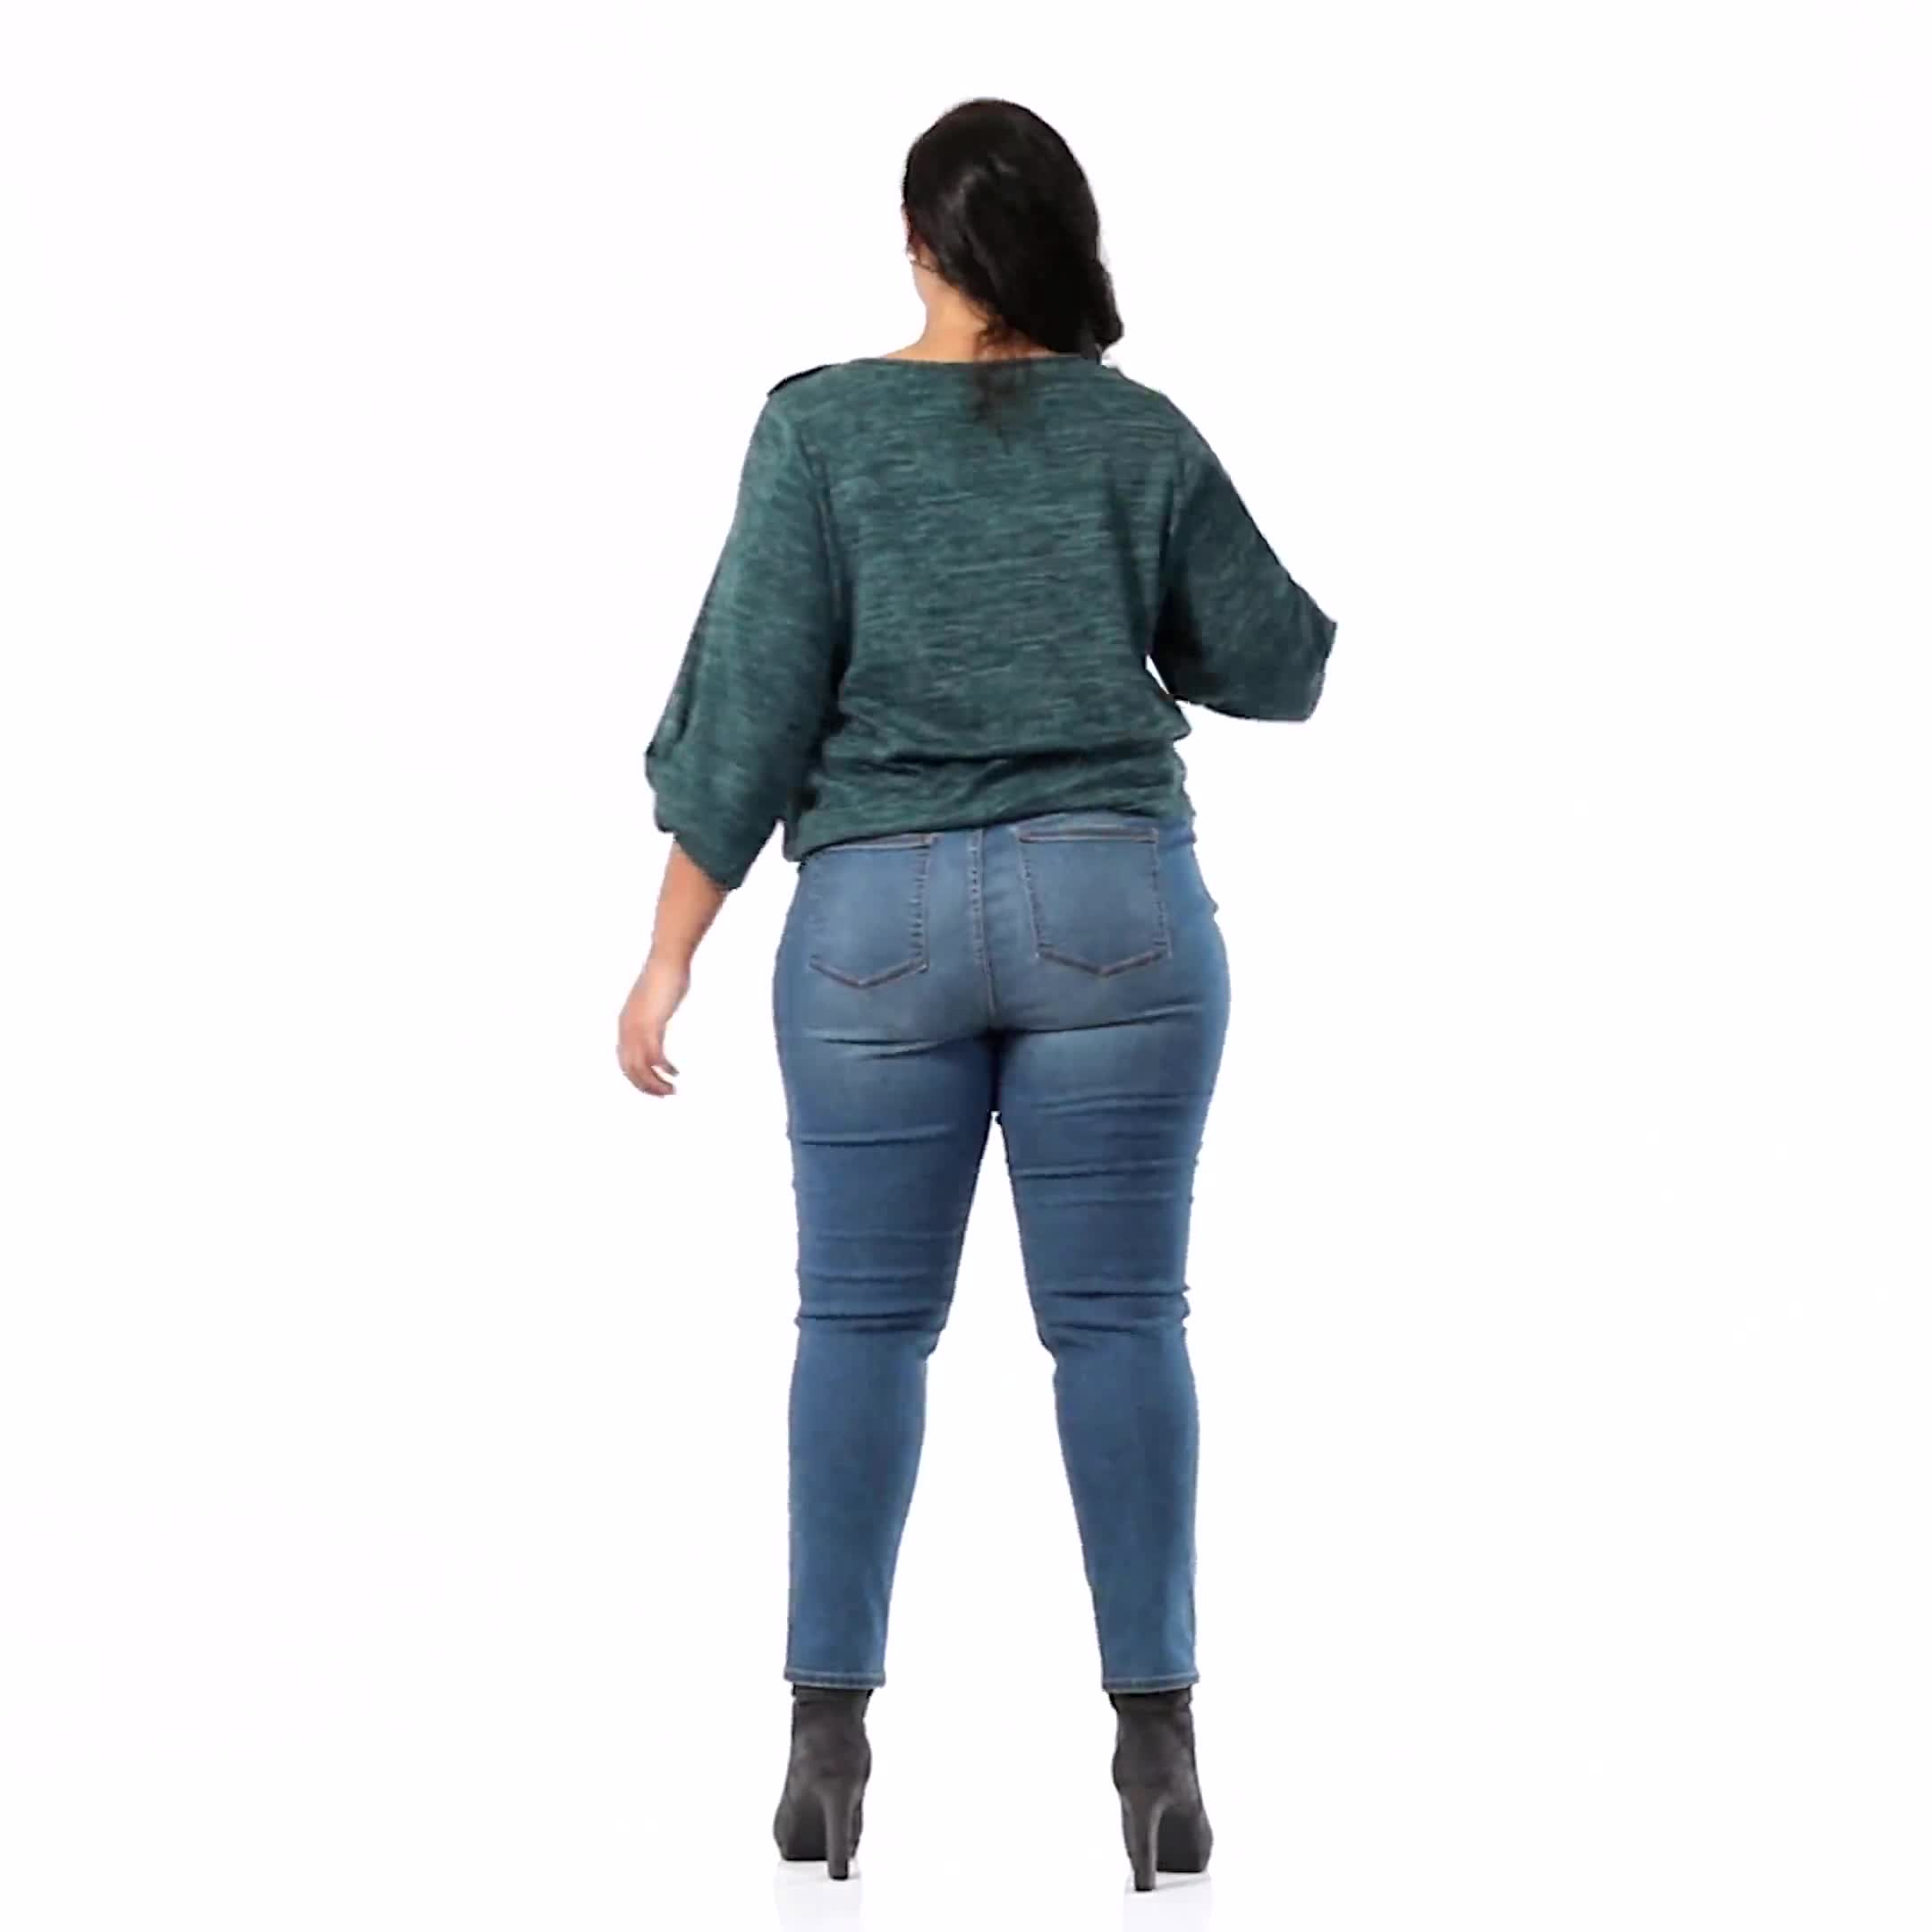 Plus- Westport Signature 5 Pocket Skinny Jean - Video